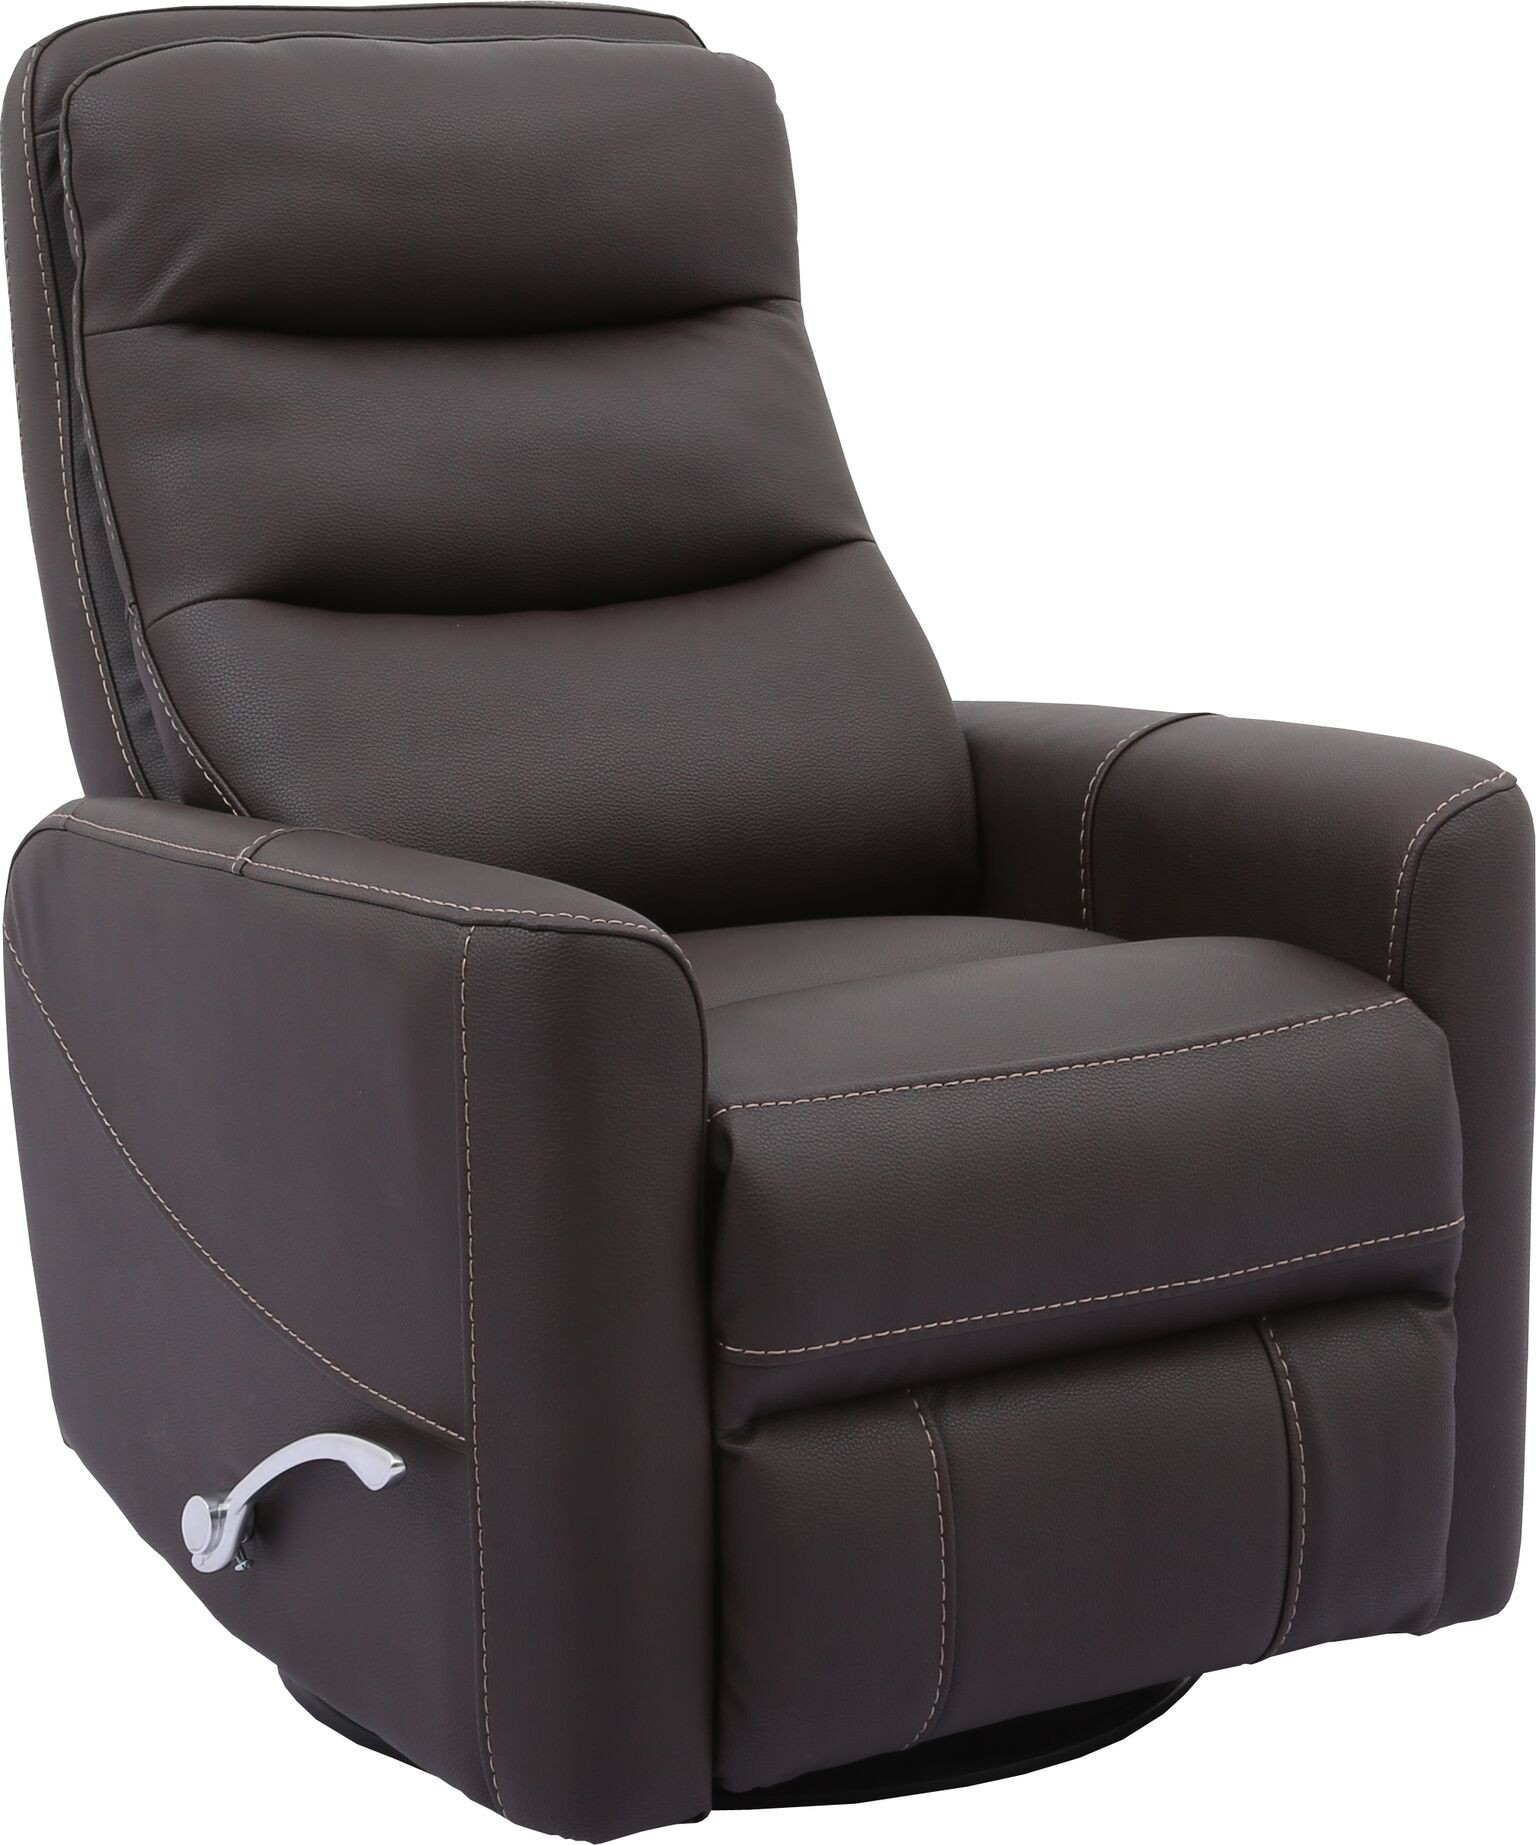 Hercules  Chocolate  Swivel Glider Recliner With Articulating Headrest Pertaining To Hercules Chocolate Swivel Glider Recliners (Photo 1 of 25)